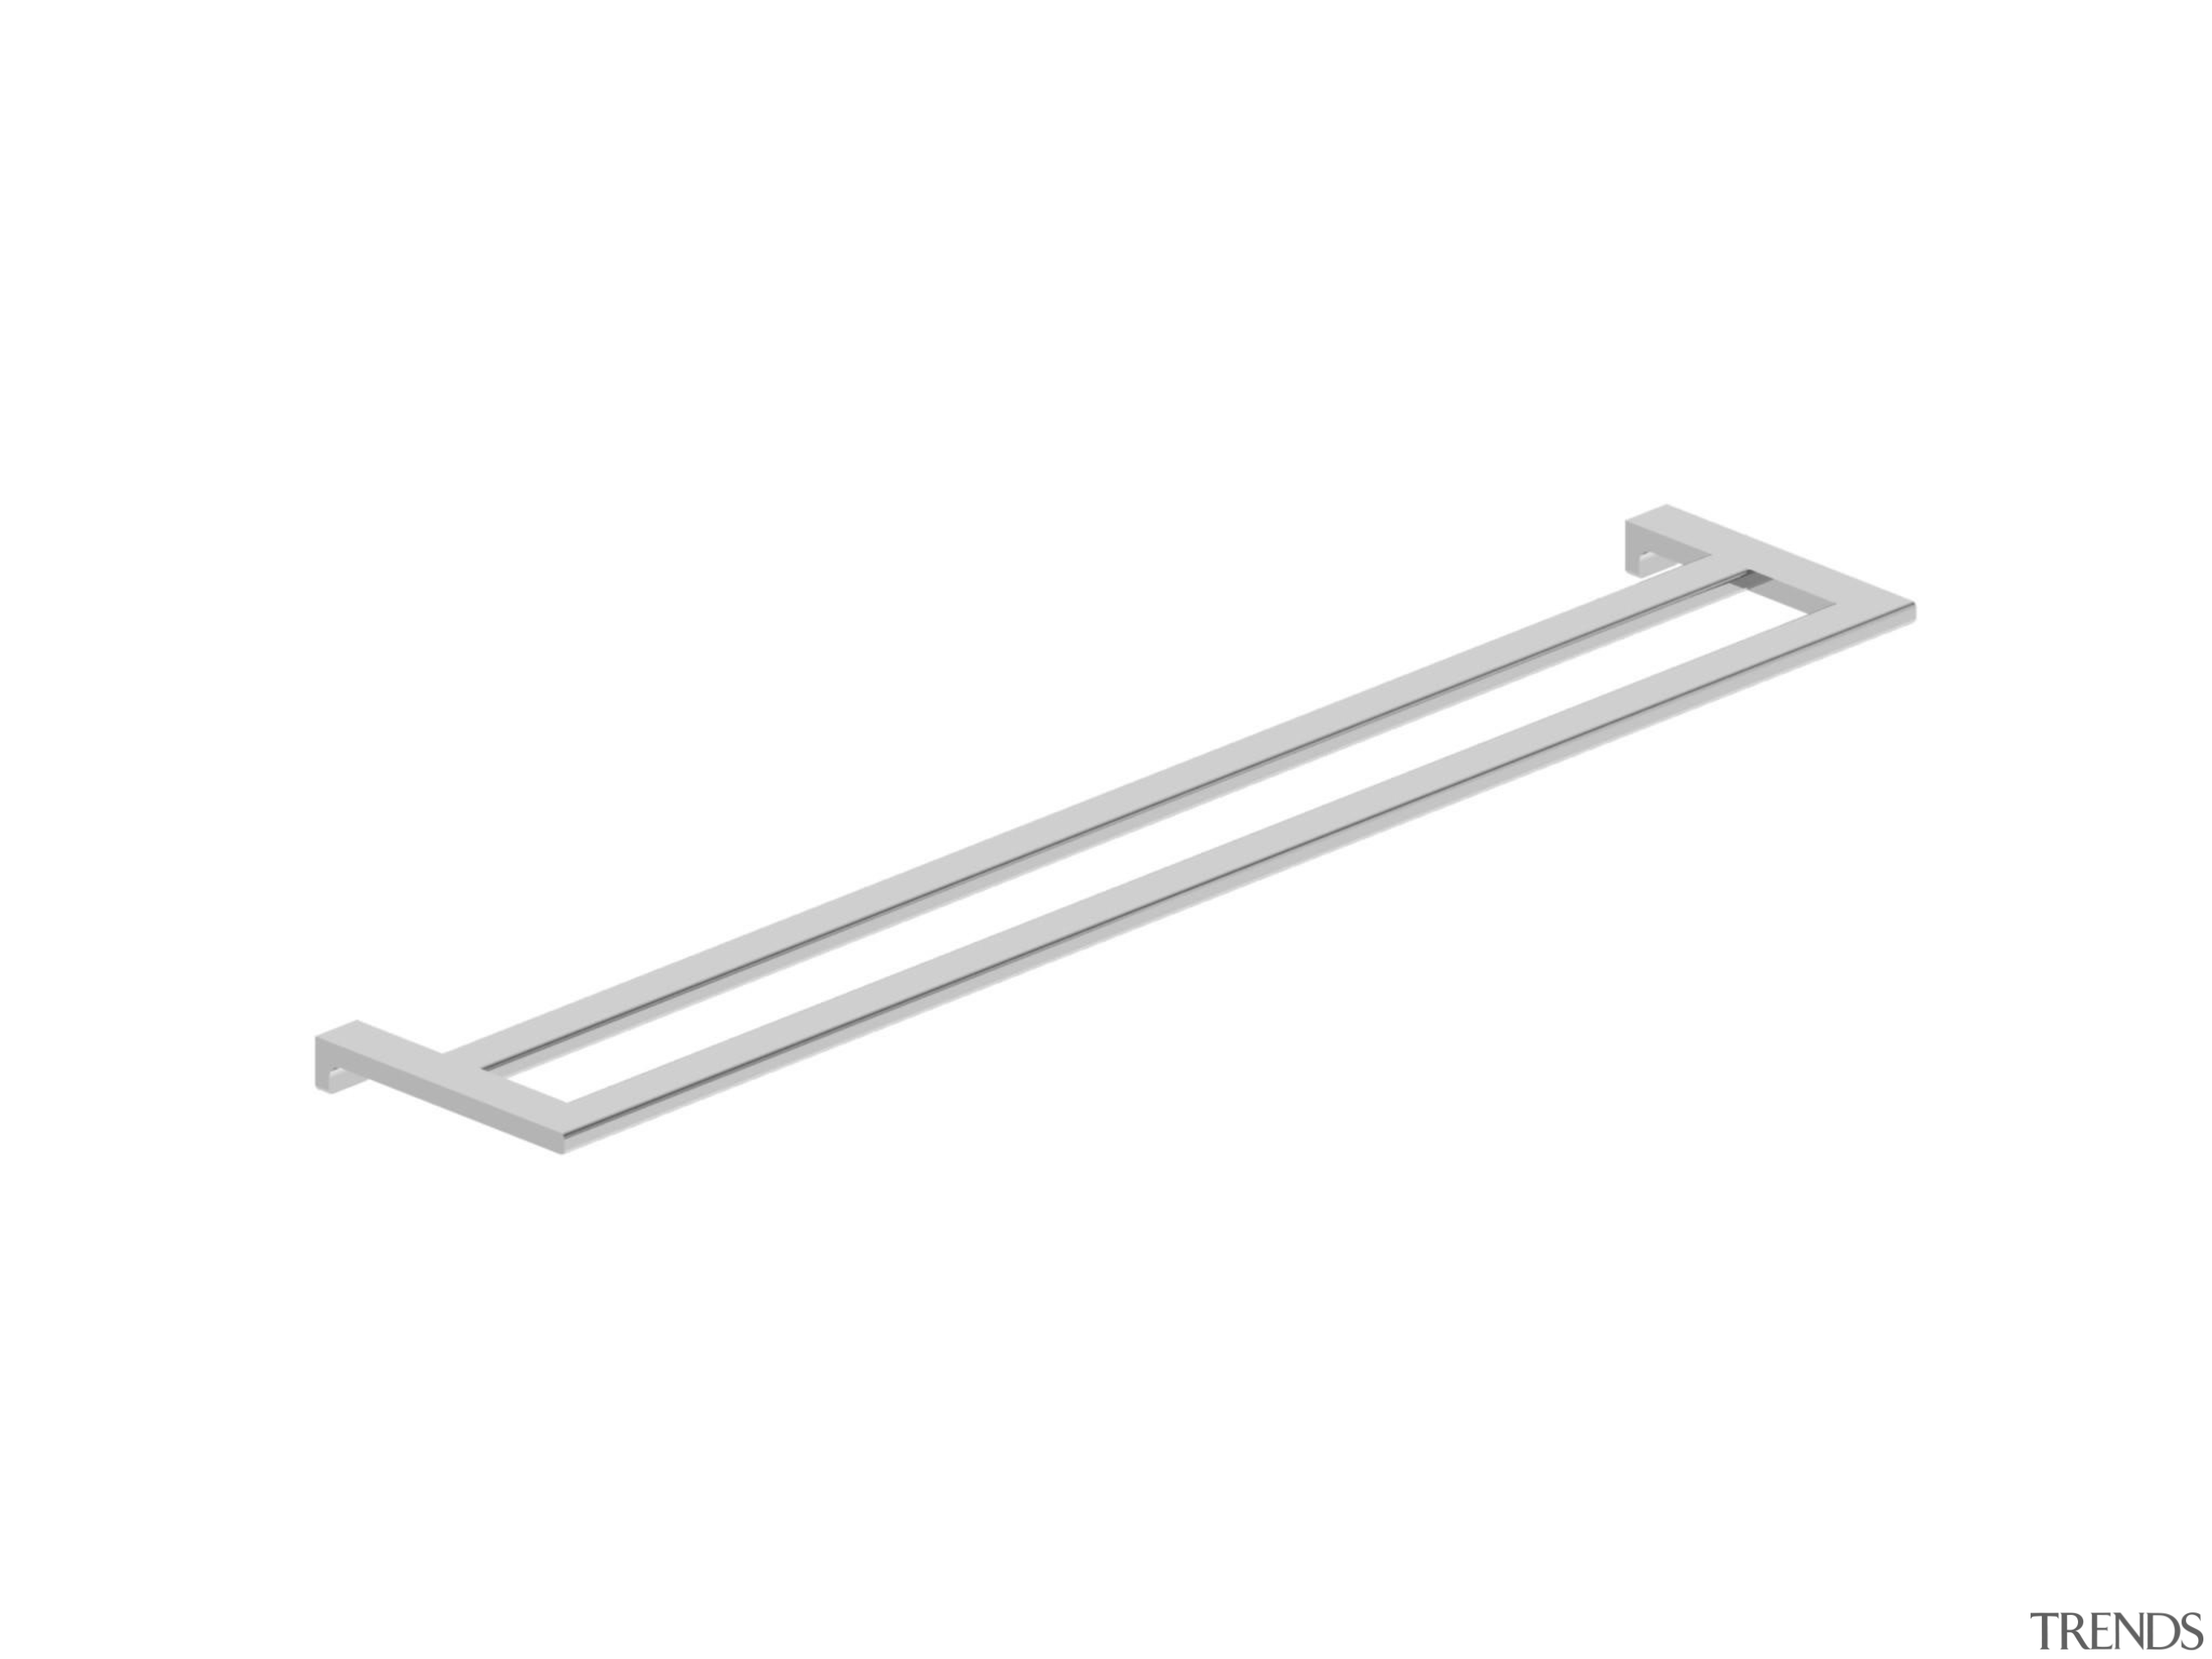 • Manufactured in Australia• Warranty 10 Years• DirectConnect angle, line, product design, white